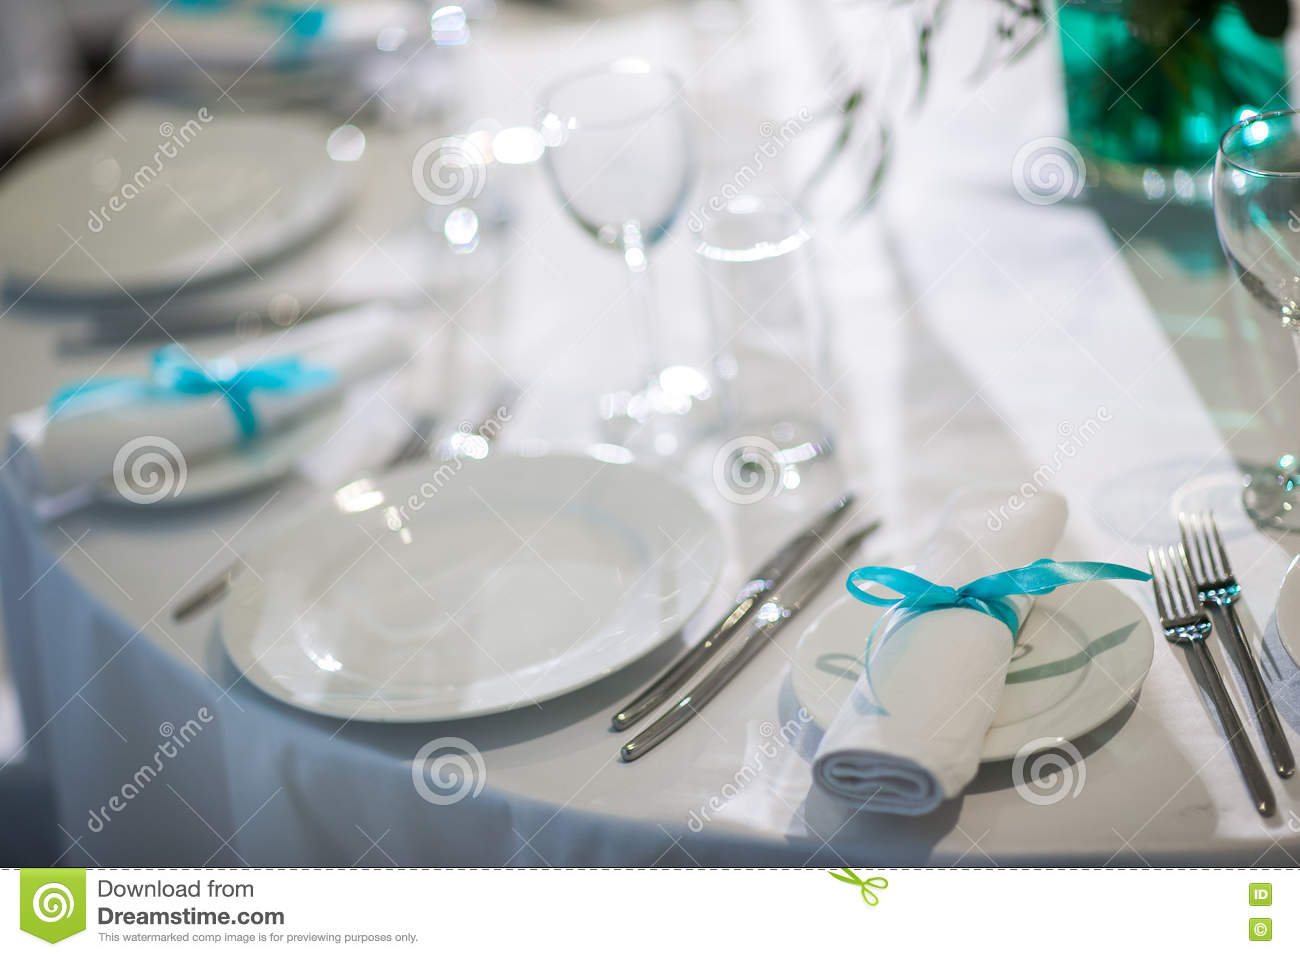 Beautifully organized event - served banquet tables ready for guests